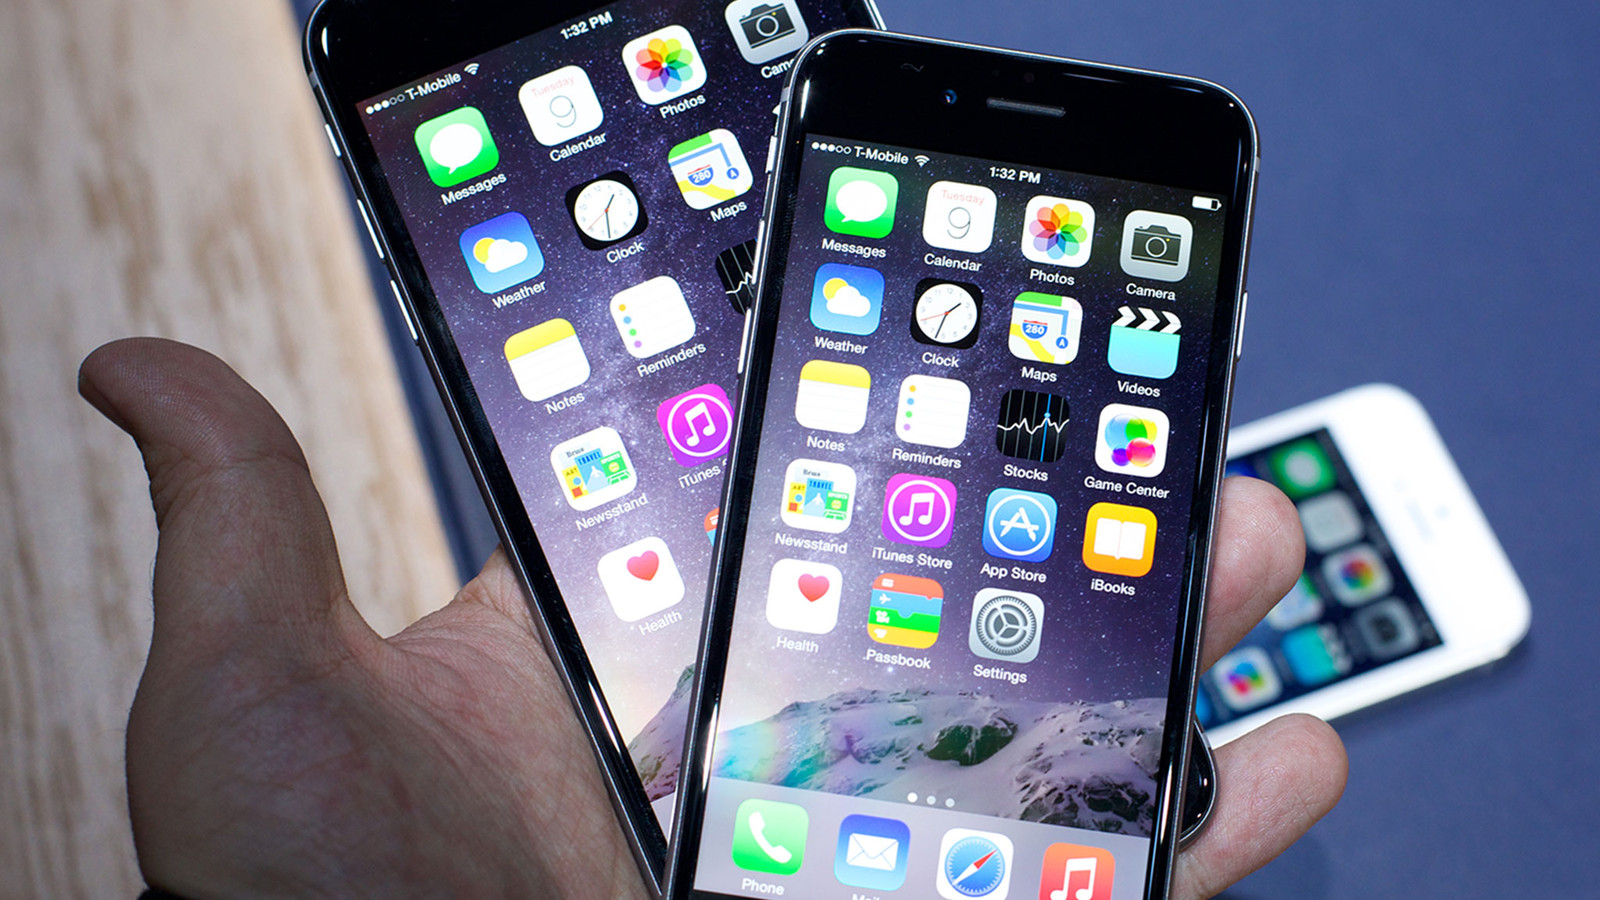 Verizon, AT&T, T-Mobile, or Sprint: Which American iPhone 6 or iPhone 6 Plus carrier should you choose?